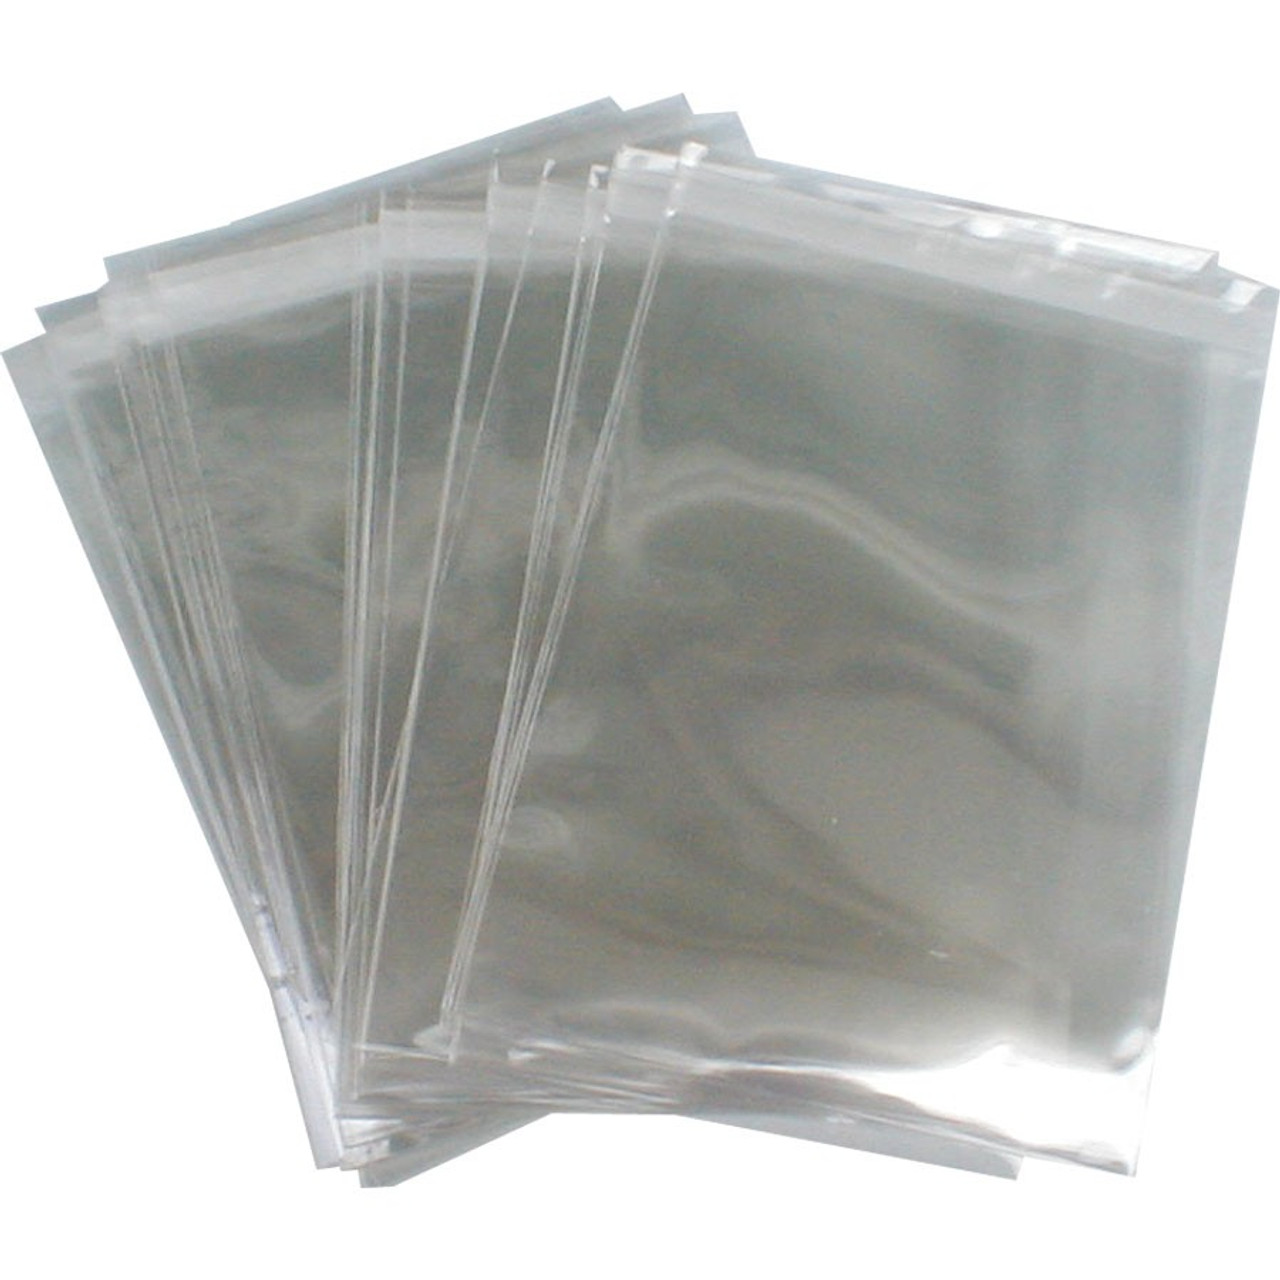 Cellophane Wallets for Packaging Inkless Kits